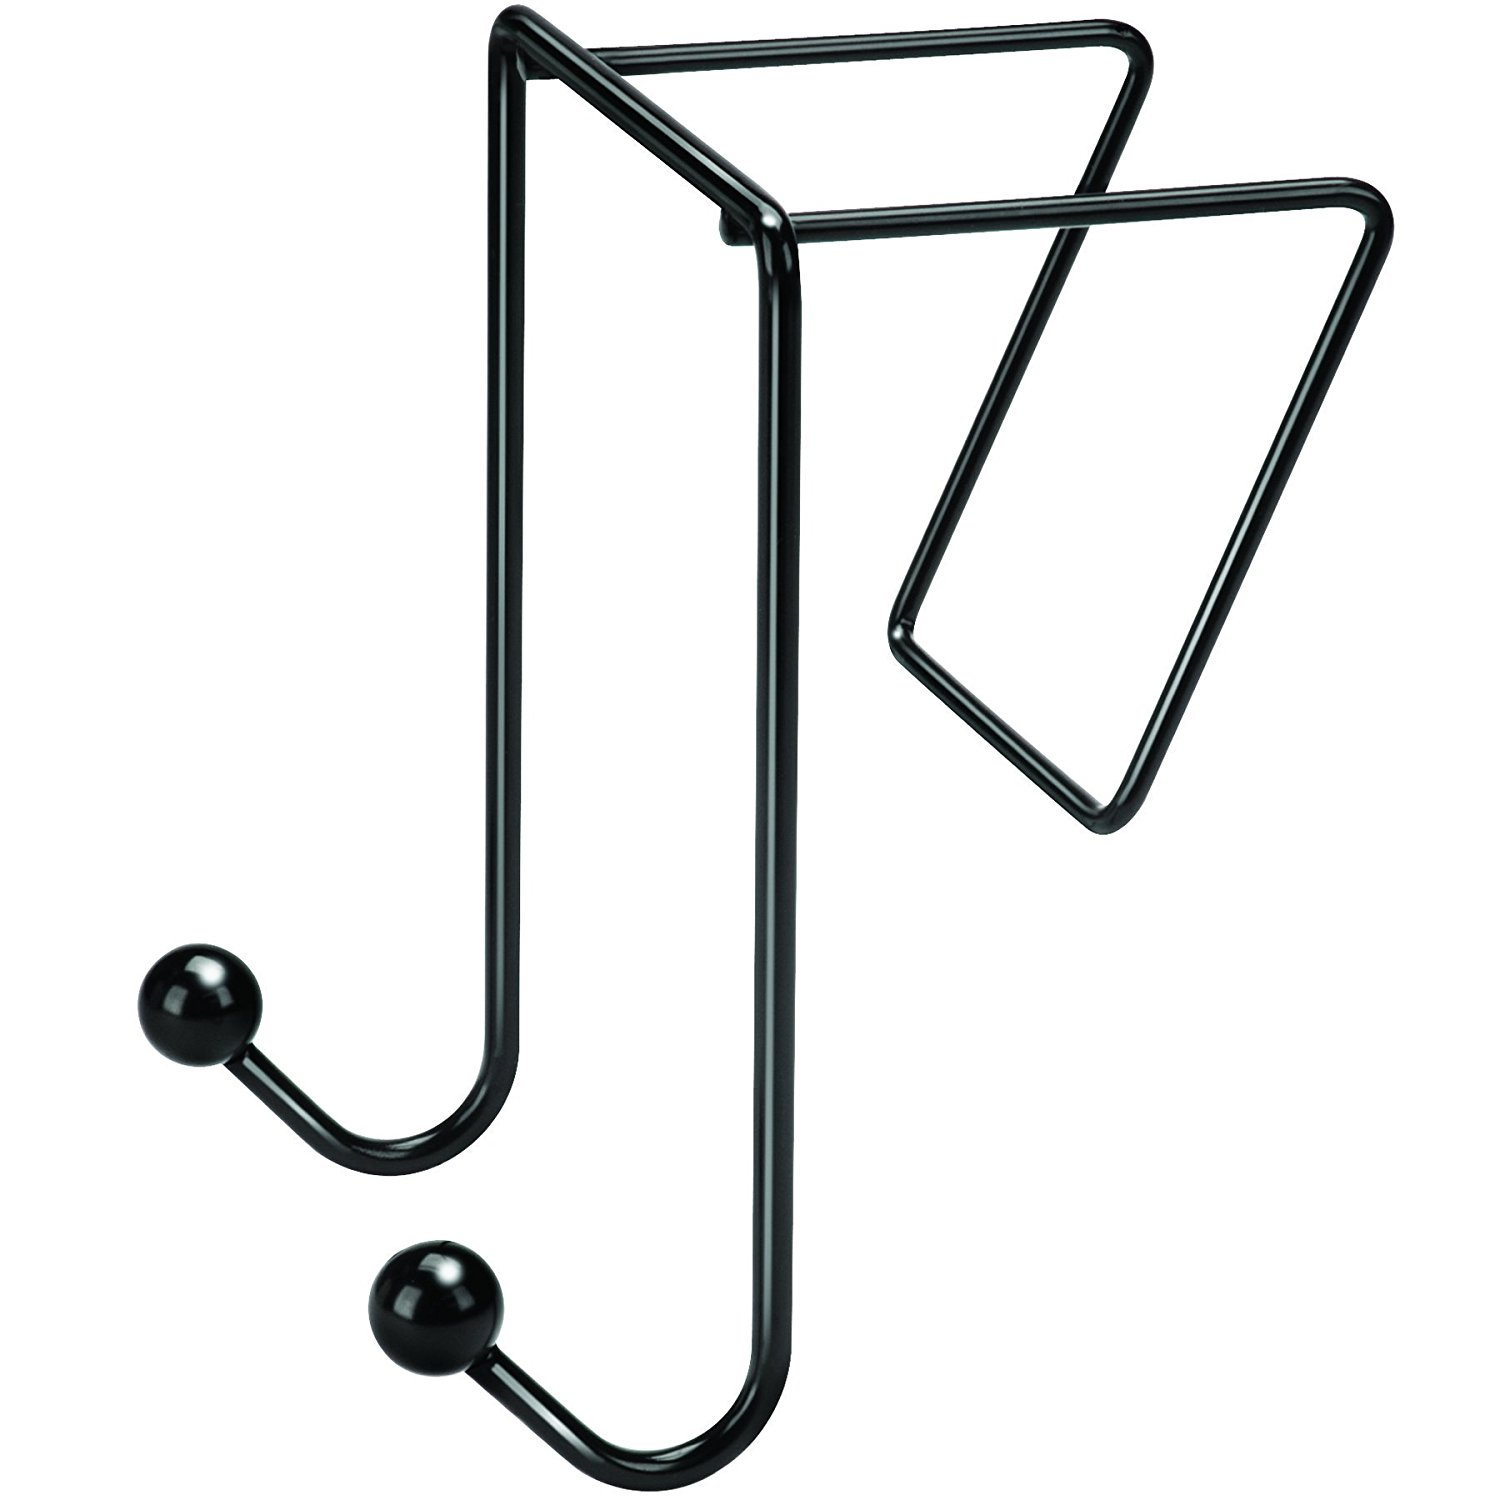 Over The Cubicle Coat Hook | Cubicle Coat Hook | Shelves for Cubicles